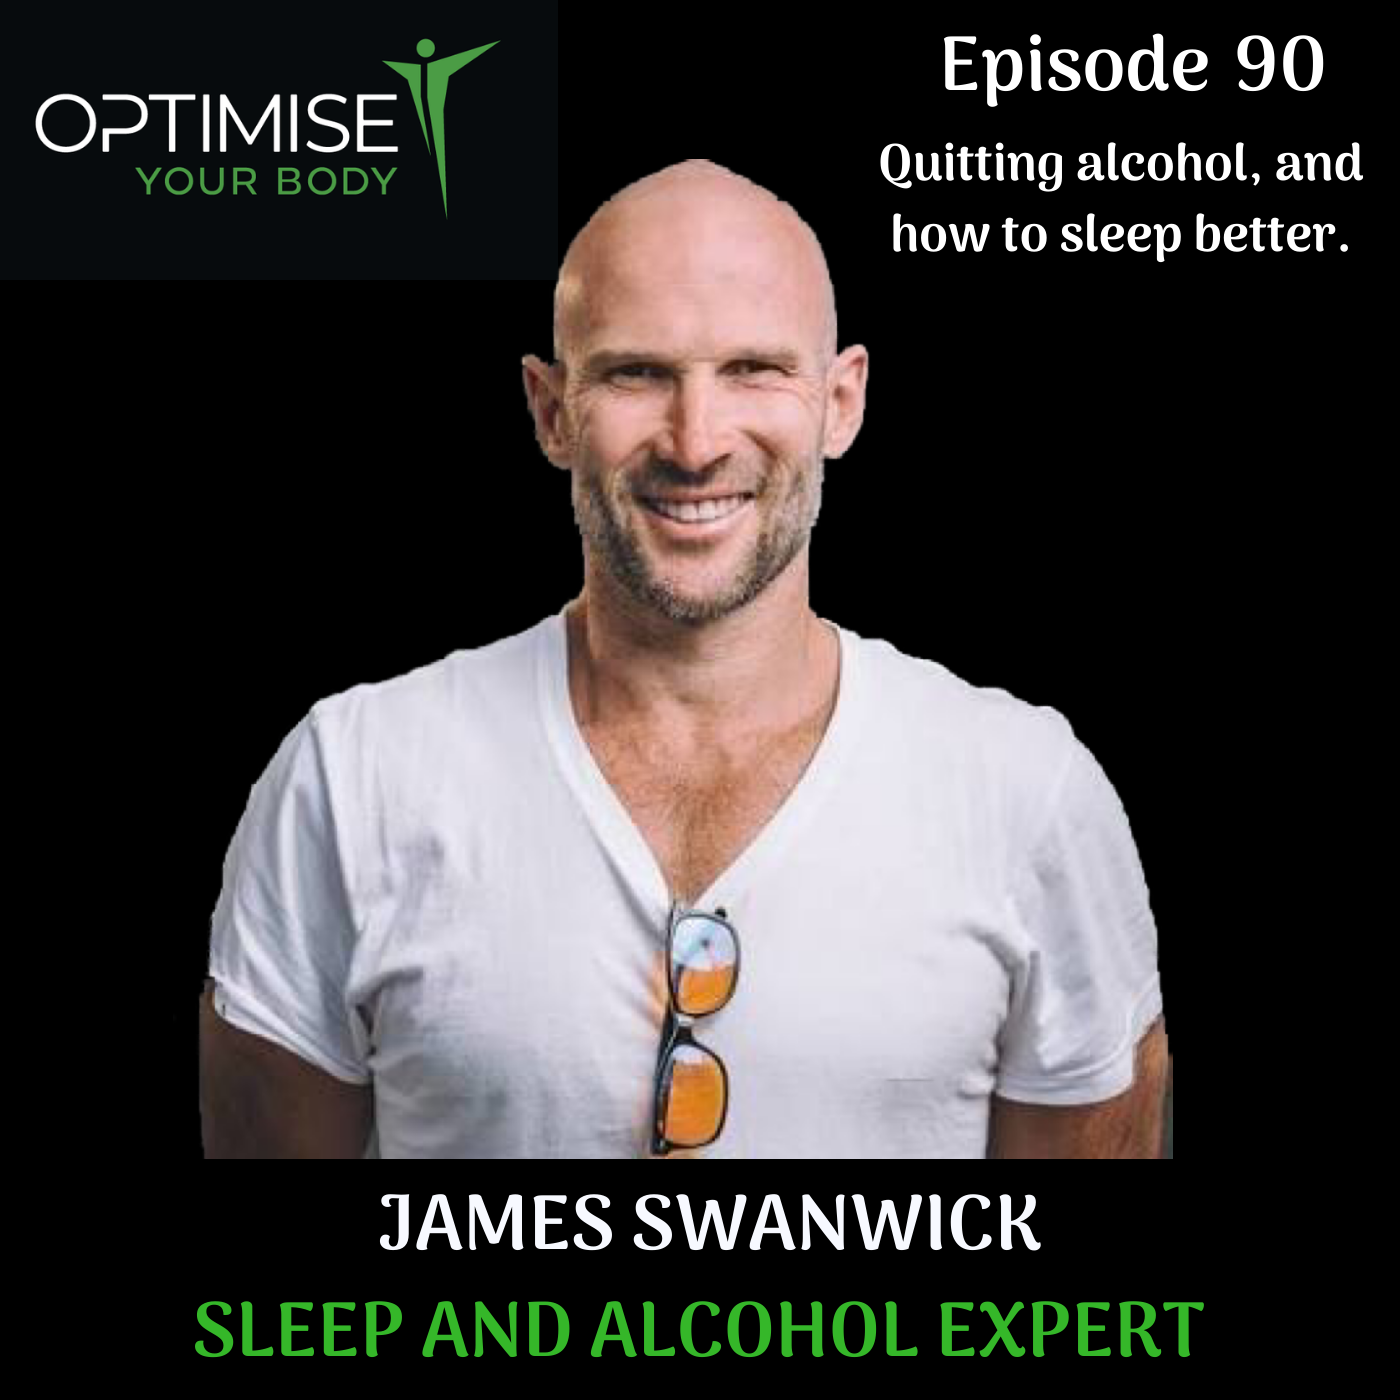 James Swanwick- Quitting alcohol, and how to sleep better